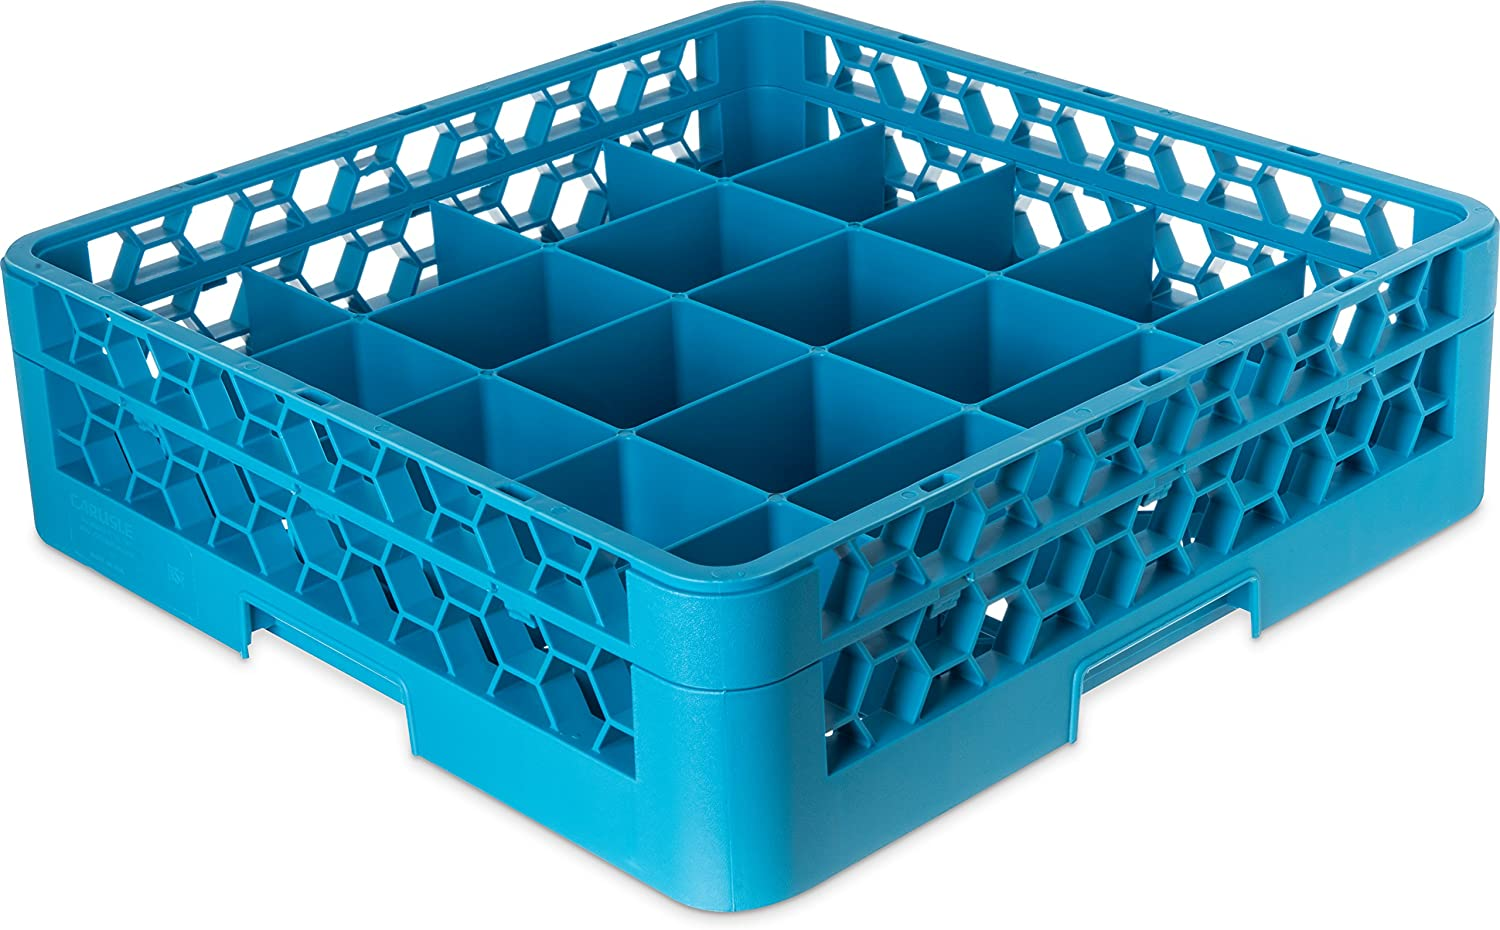 Carlisle RC20-114 OptiClean Tilted 20 Compartment Cup Rack with 1 Extender, bluee (Pack of 4)